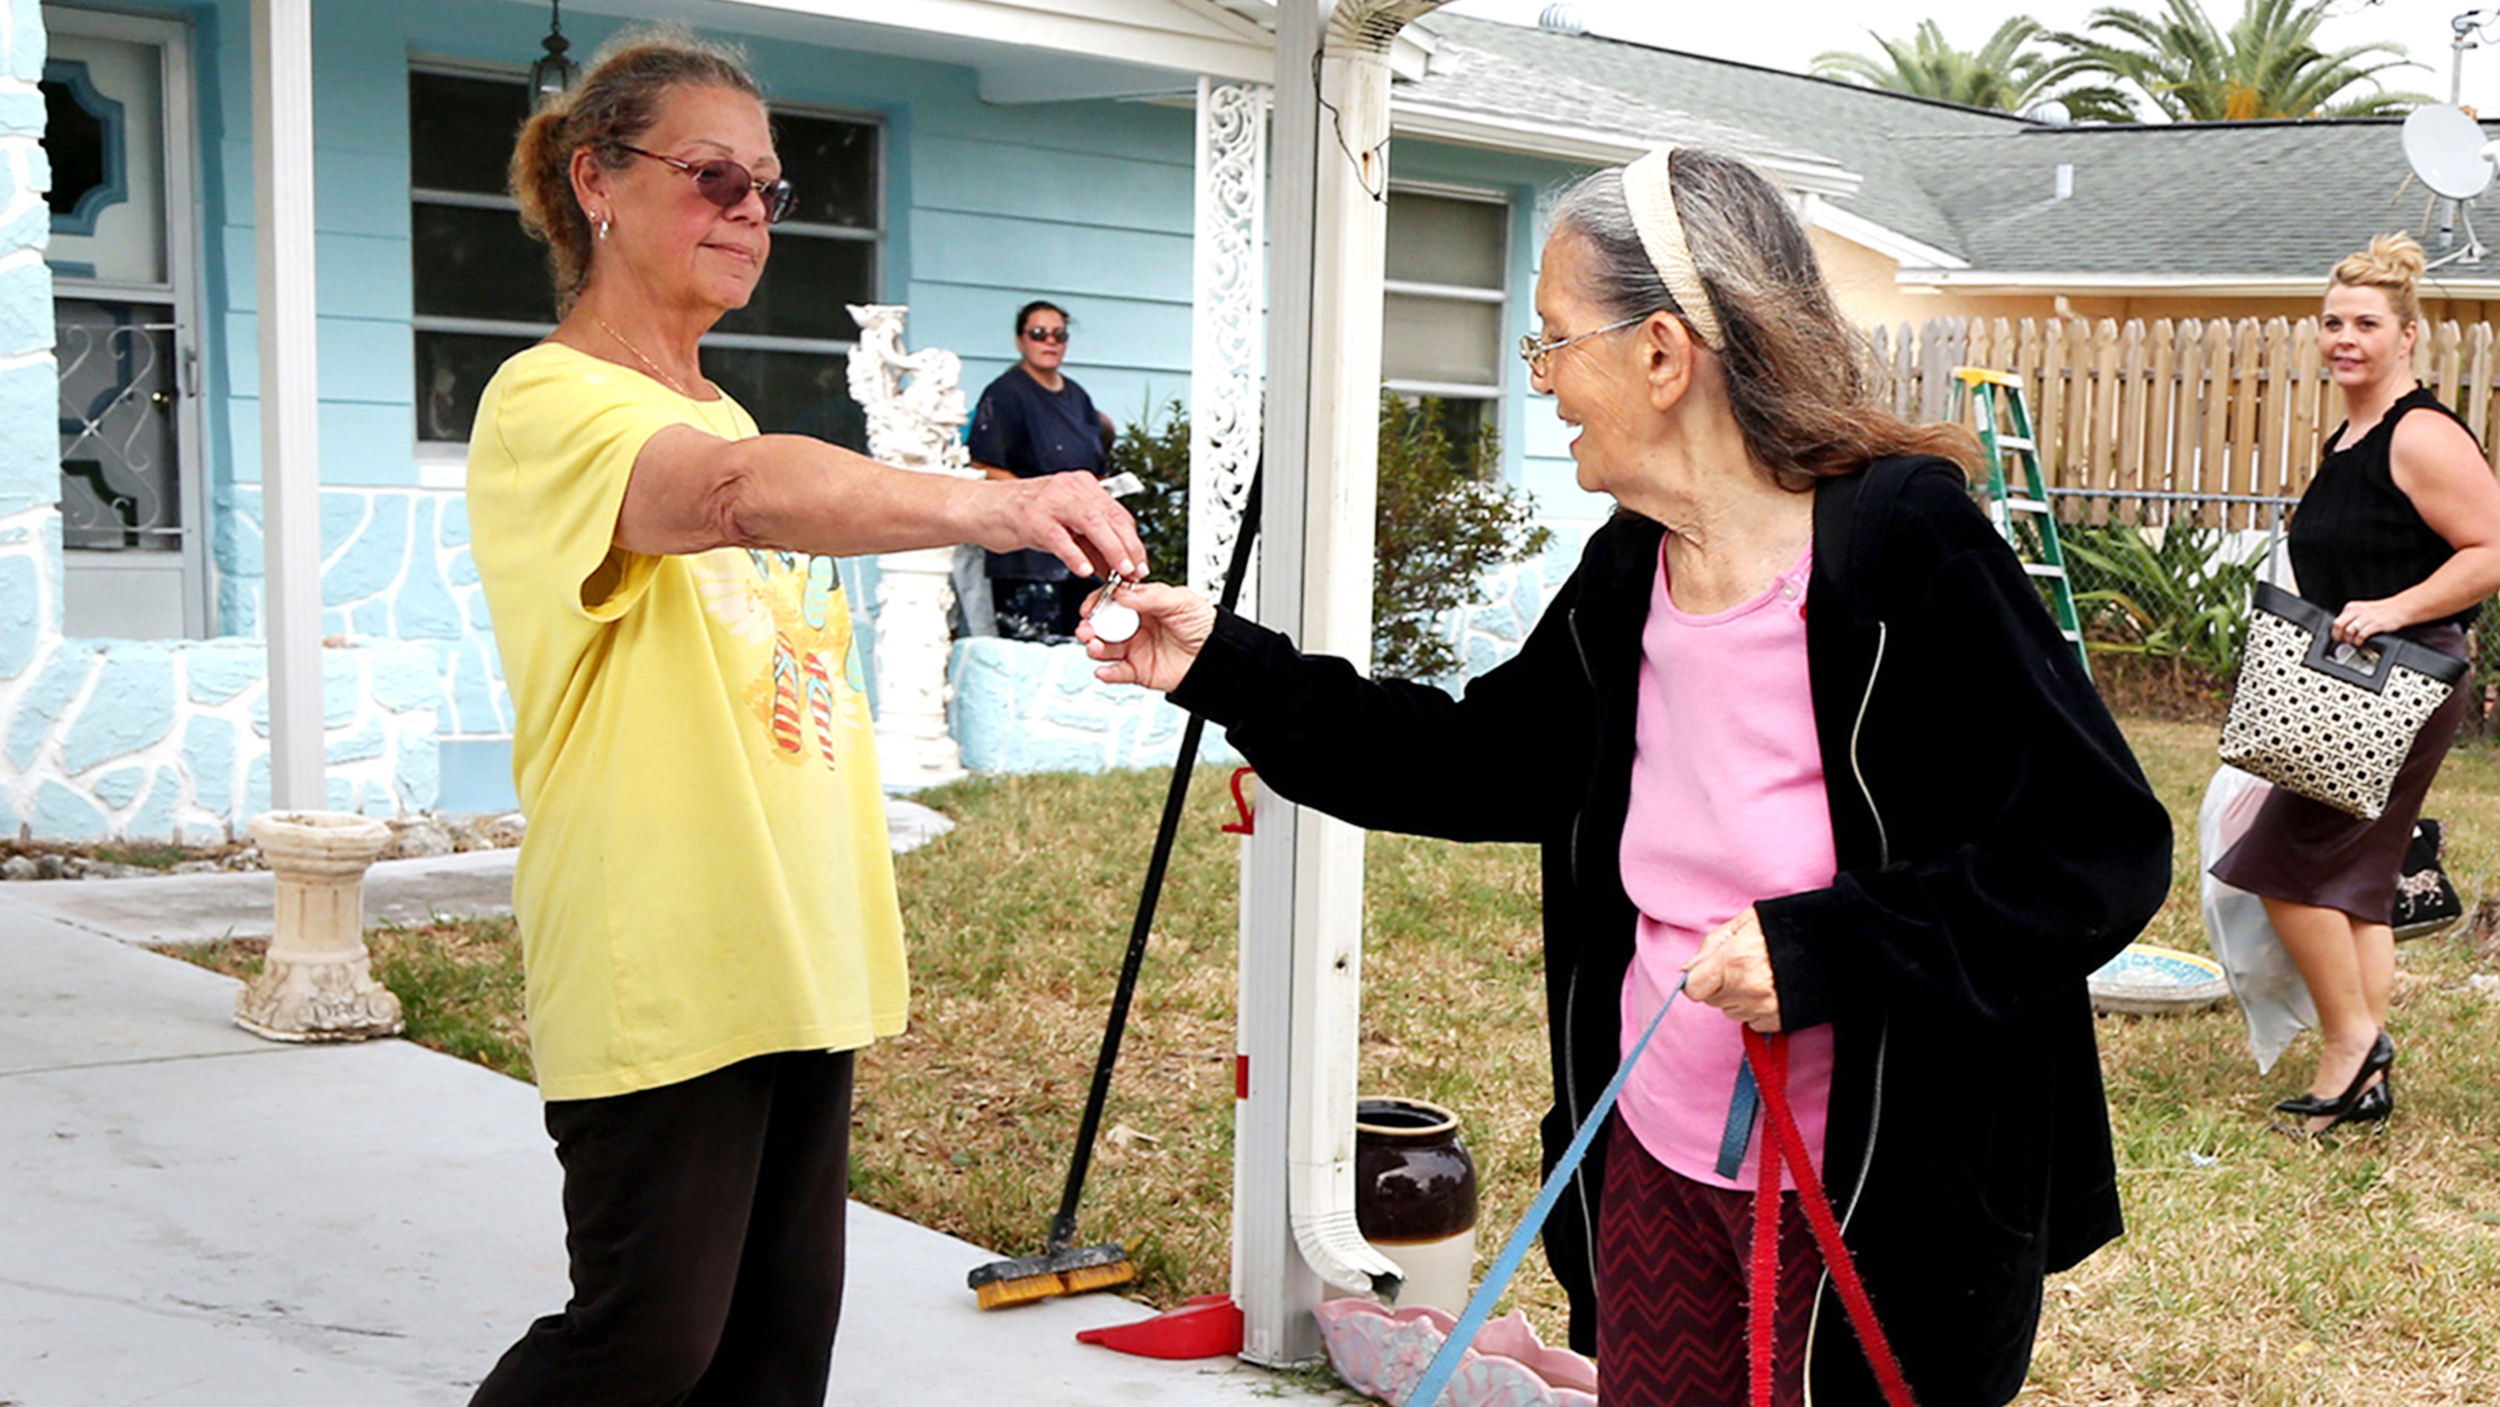 After 89-year-old woman is evicted, neighbor buys back her home